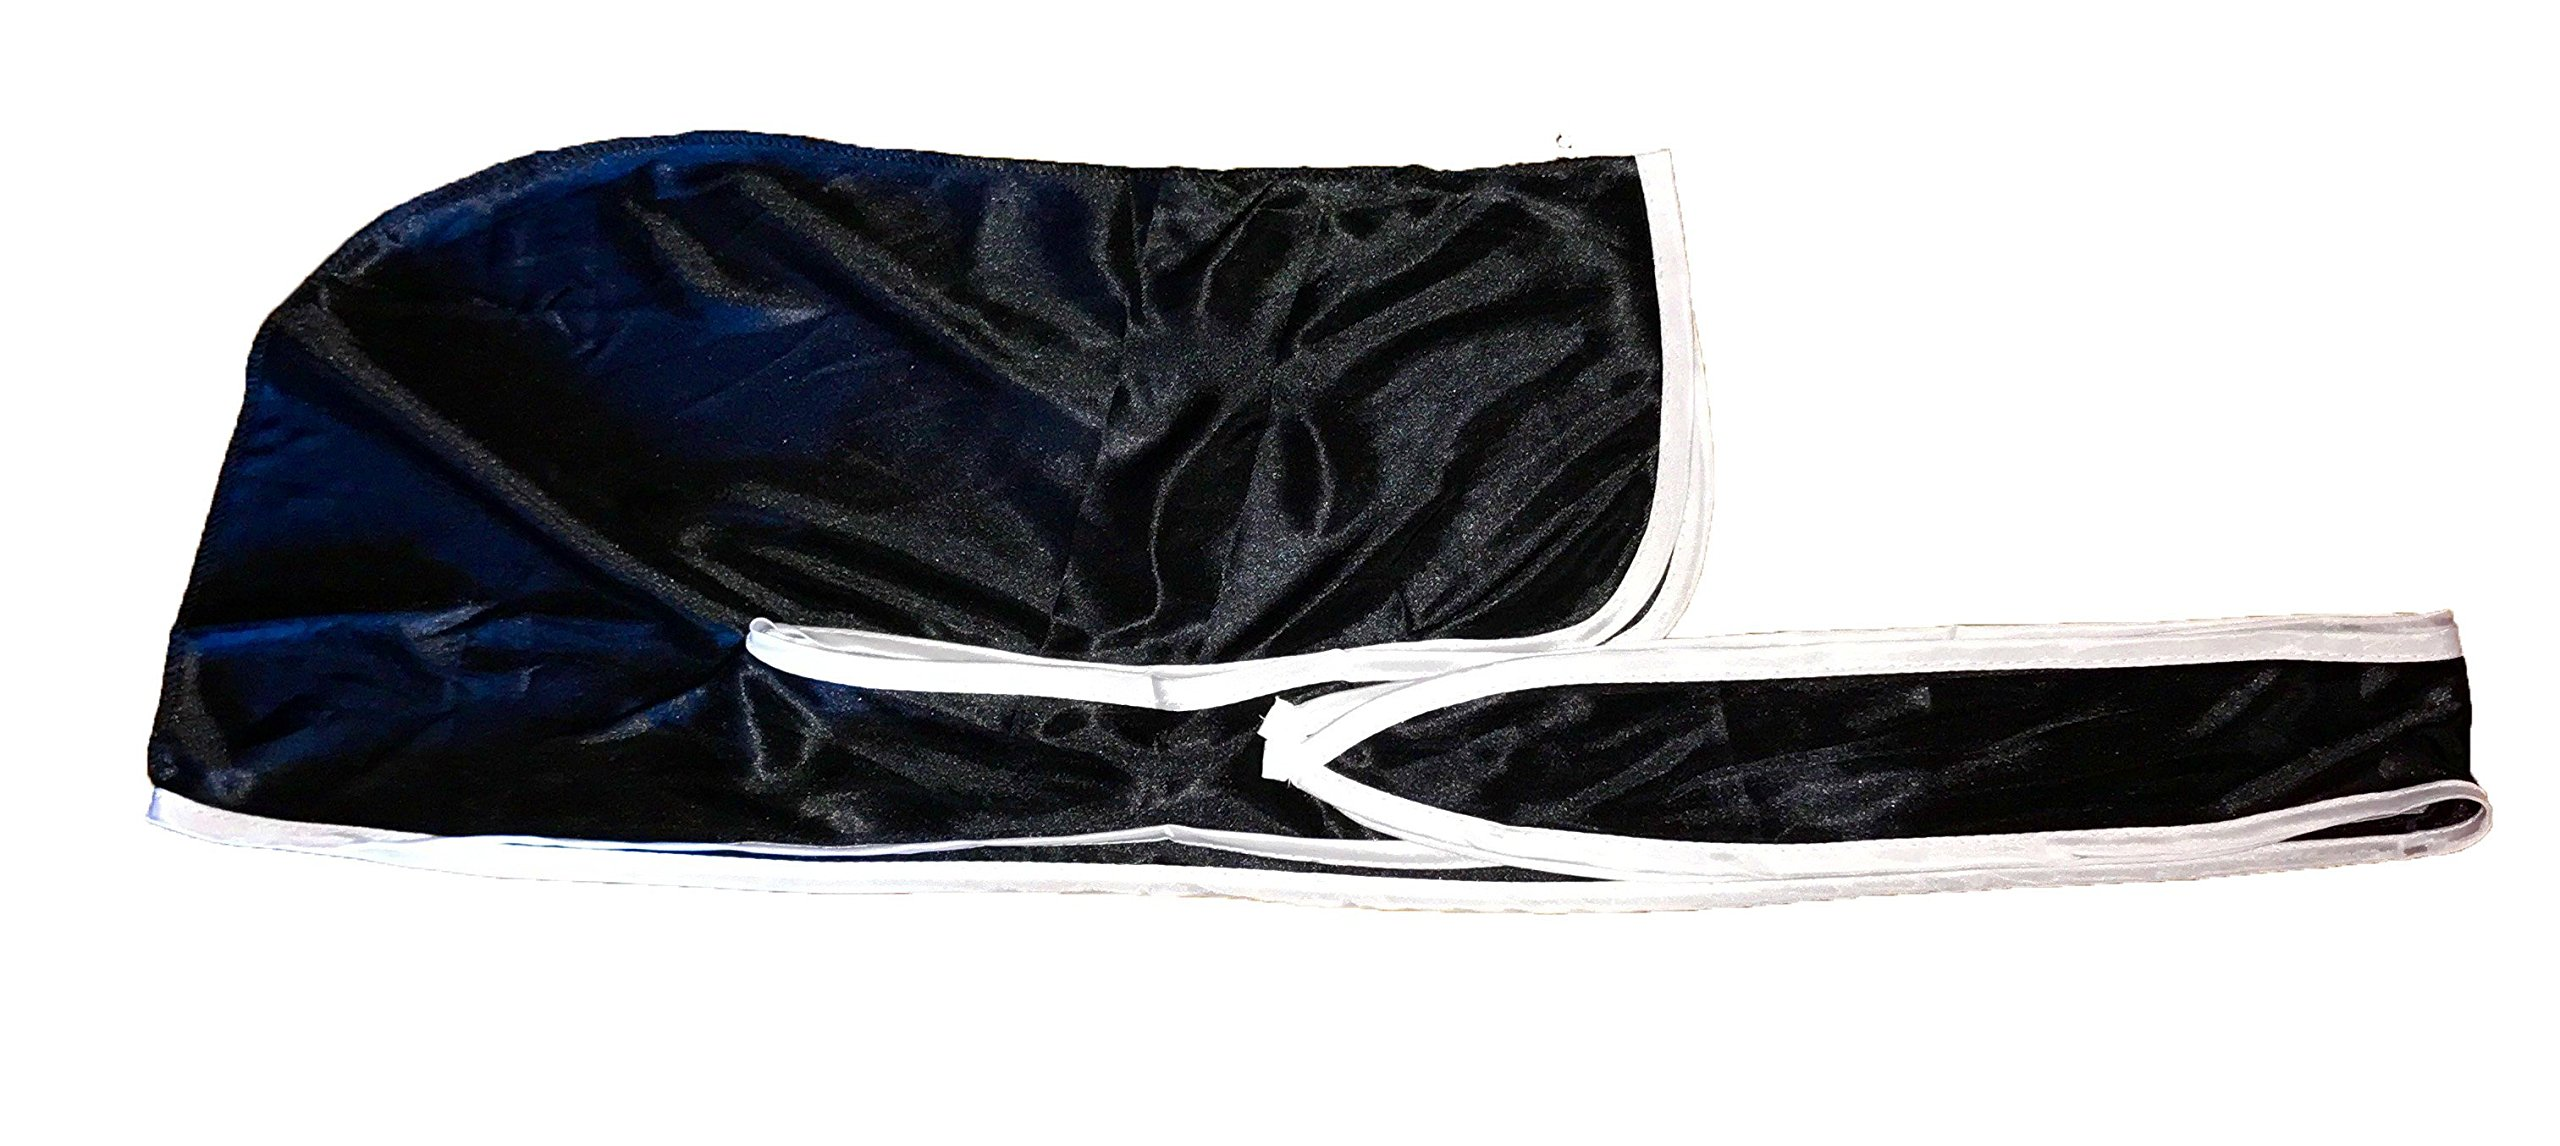 Rimix Silky Durag 360, 540, and 720 Waves Extra Long and Wide Straps Limited Edition (Black/White)